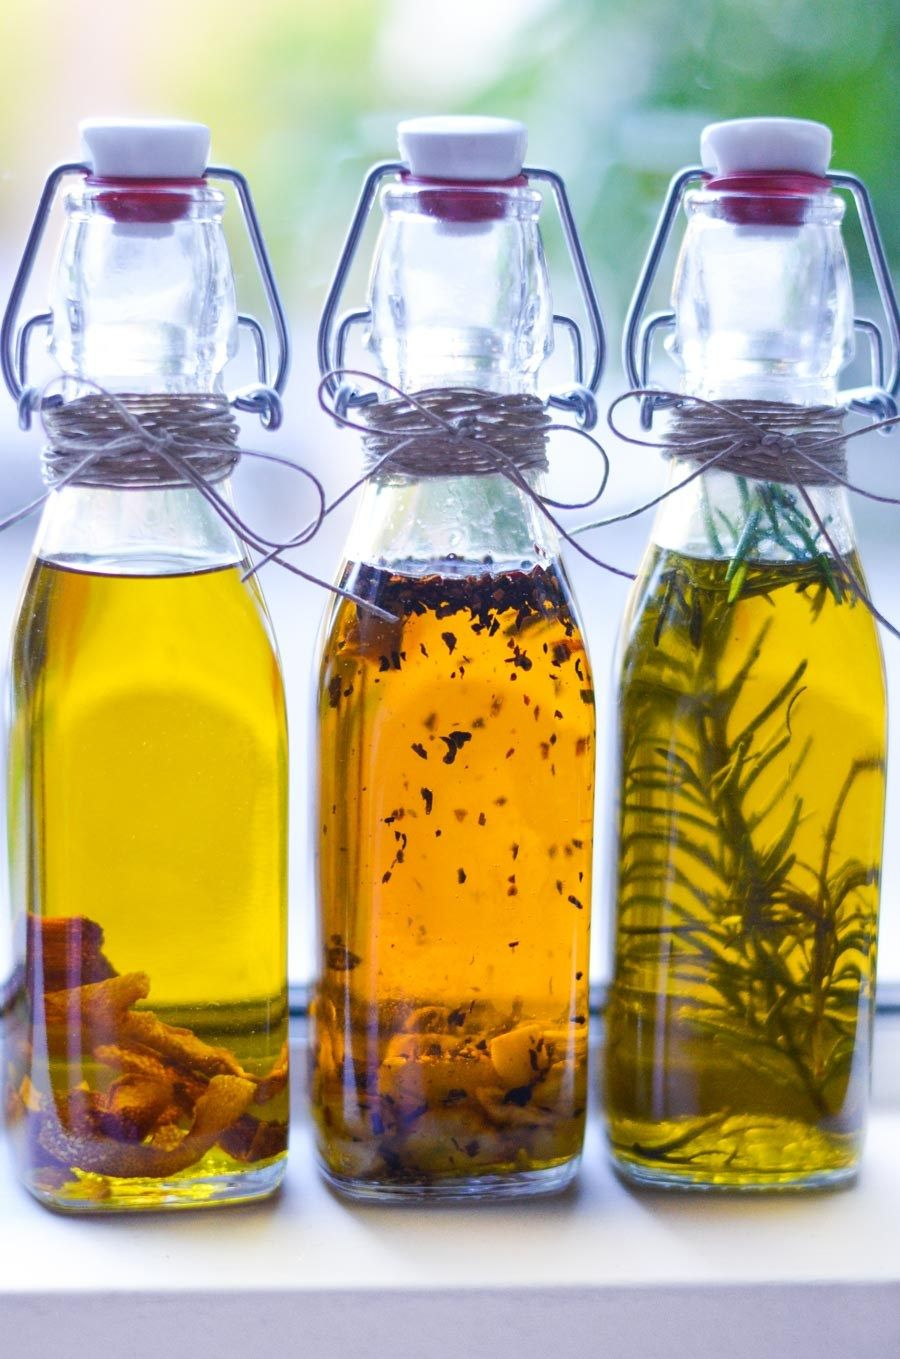 Homemade infused olive oils | Recipe | Flavored olive oil ...